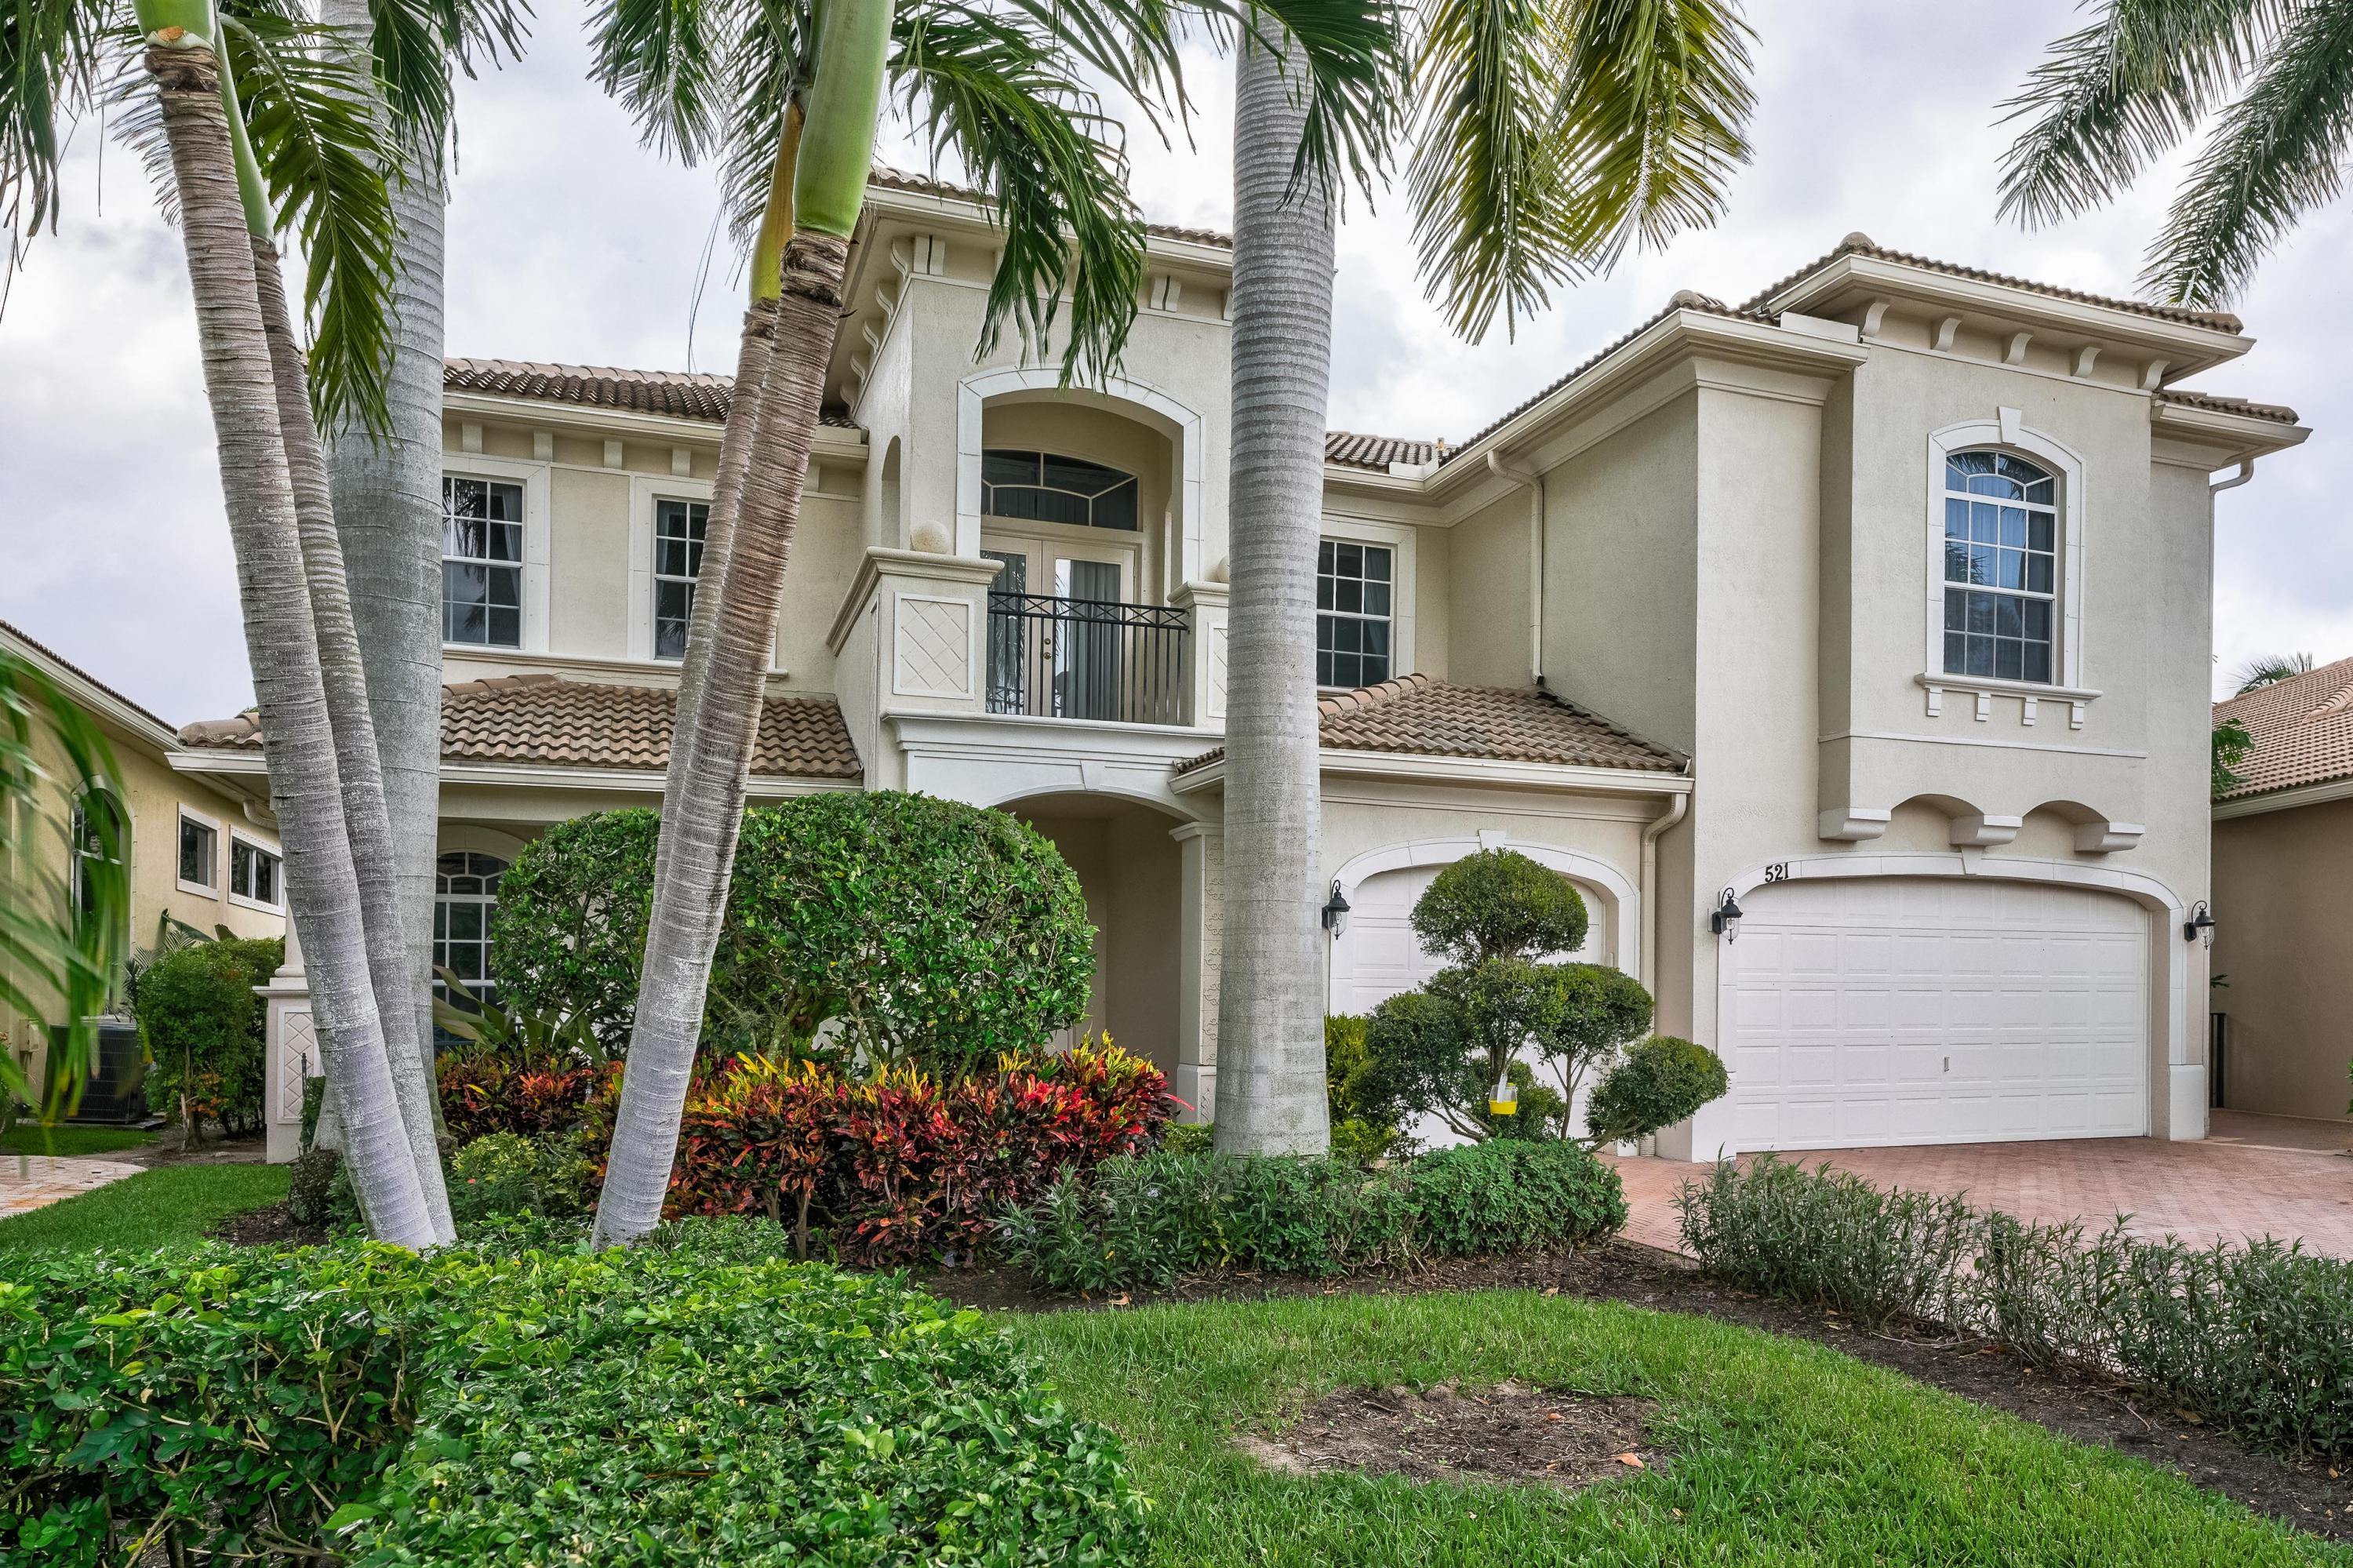 New Home for sale at 521 Les Jardin Drive in Palm Beach Gardens